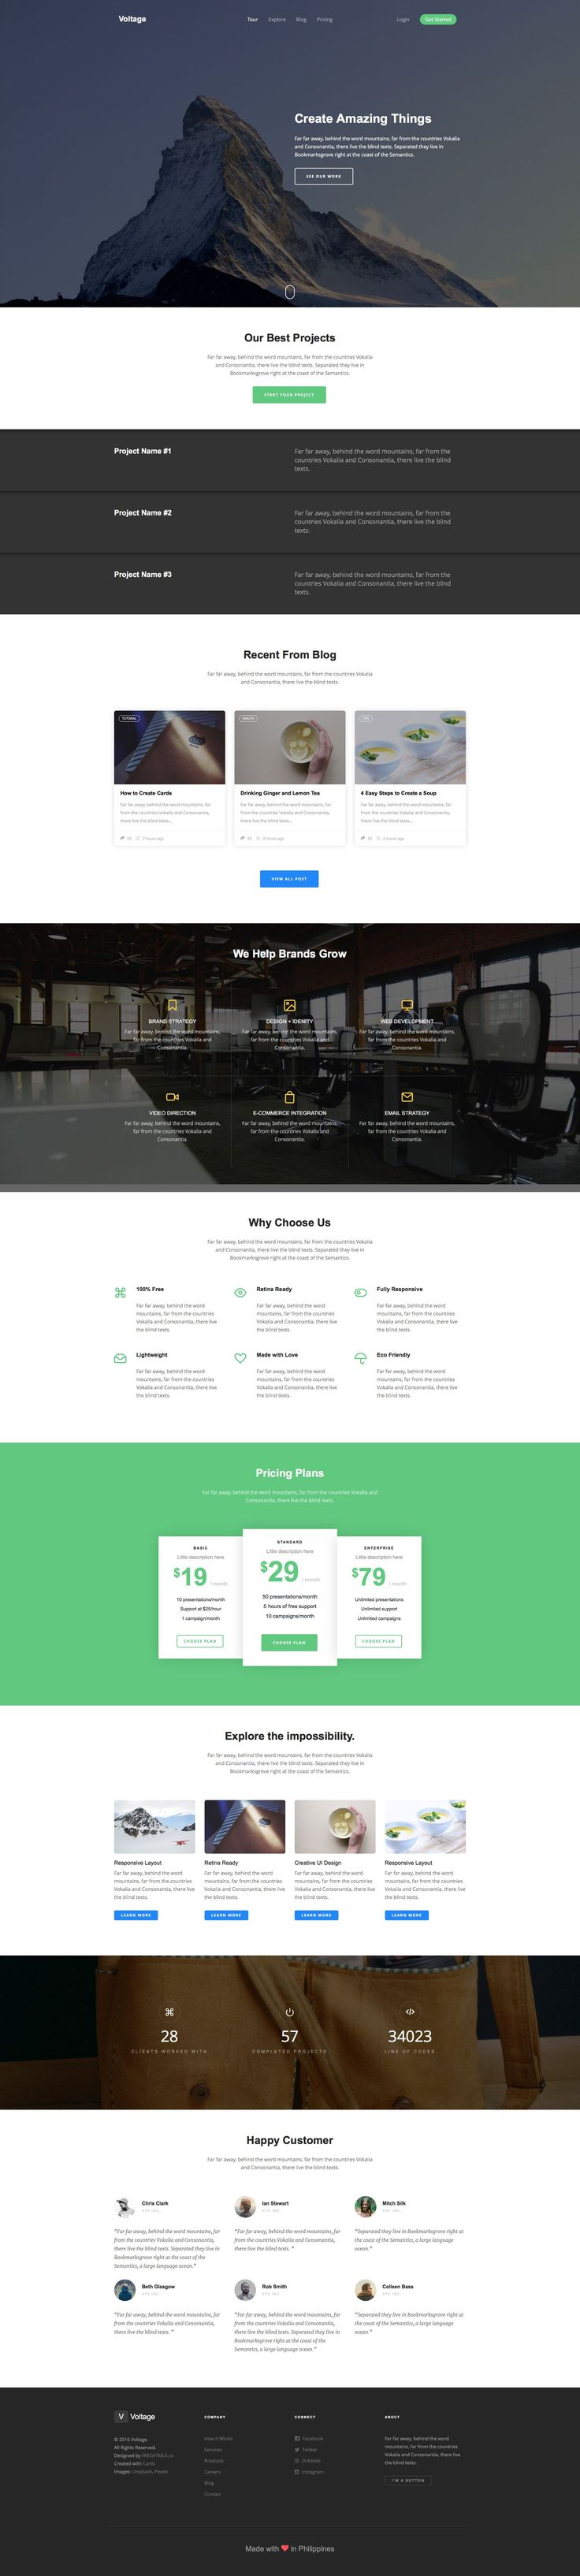 Voltage is a free responsive HTML5 template using Bootstrap. Ideal for portfolio or studio websites. Voltage comes packed with many extra features like smooth parallax, jQuery counter, retina ready icon fonts, off-canvas menu on mobile and many more.